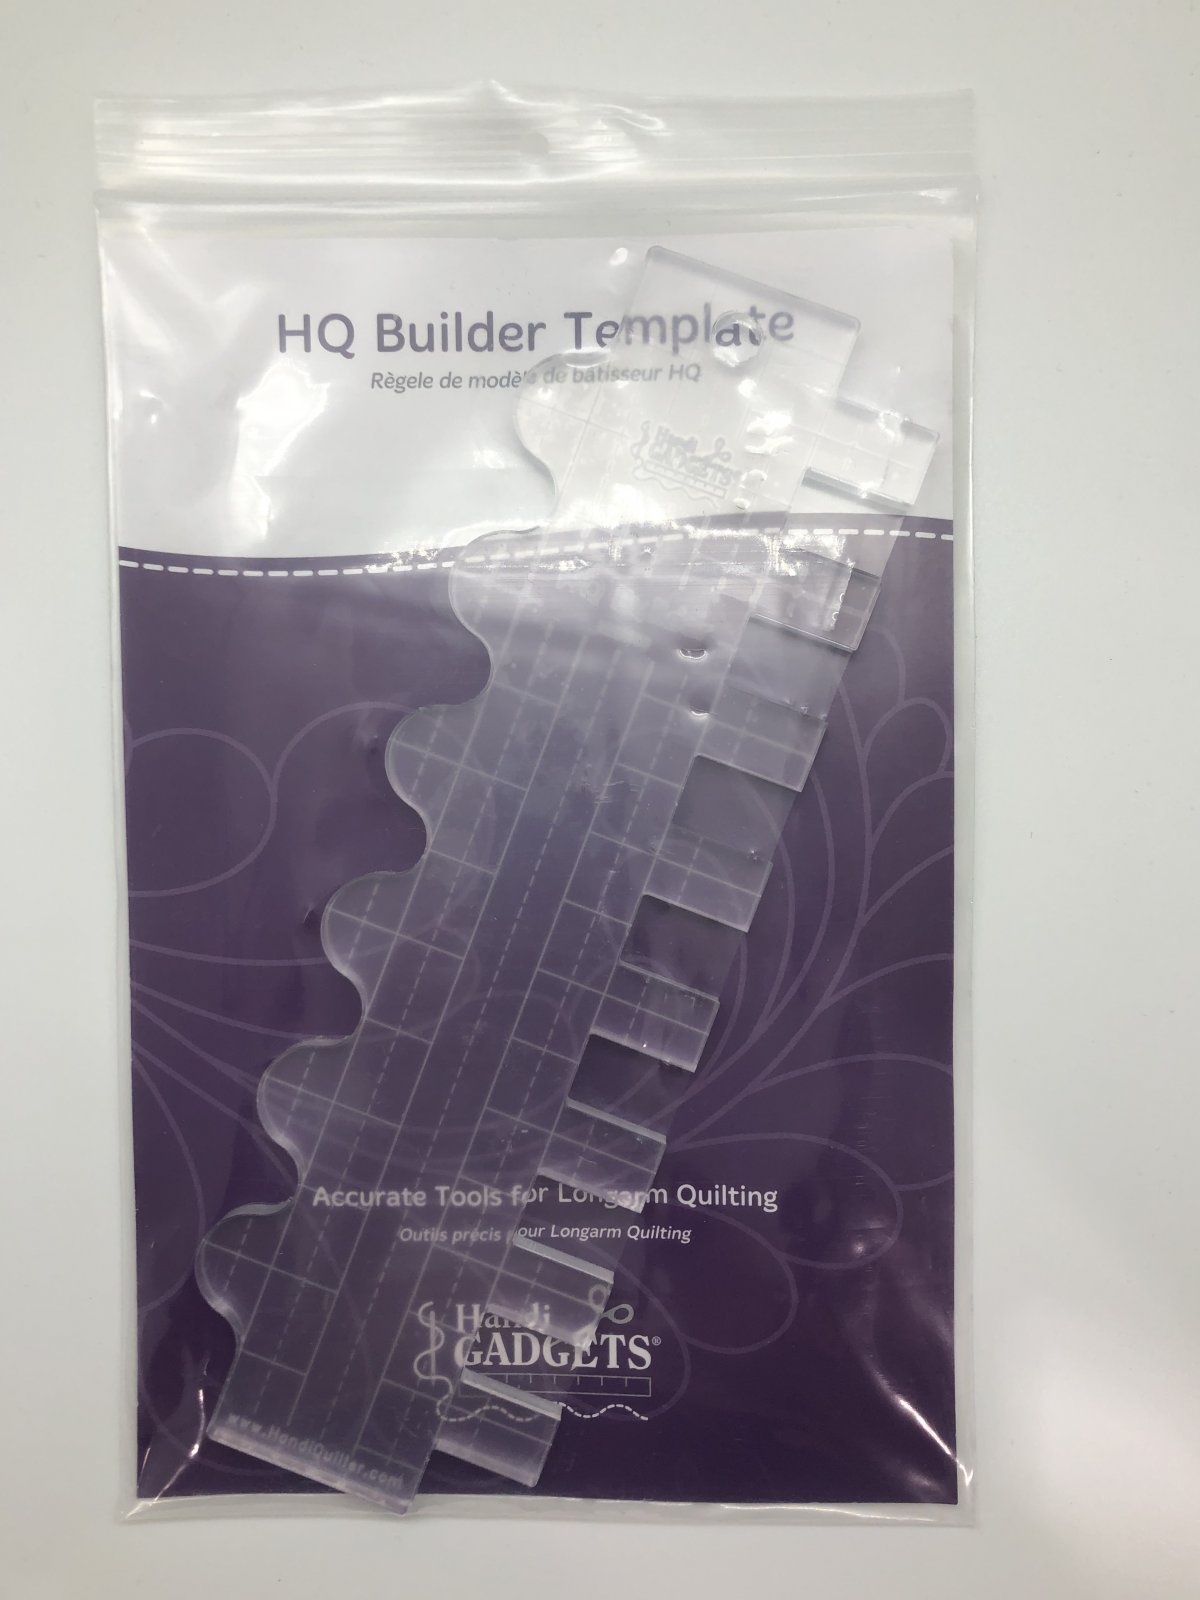 HQ Builder Template